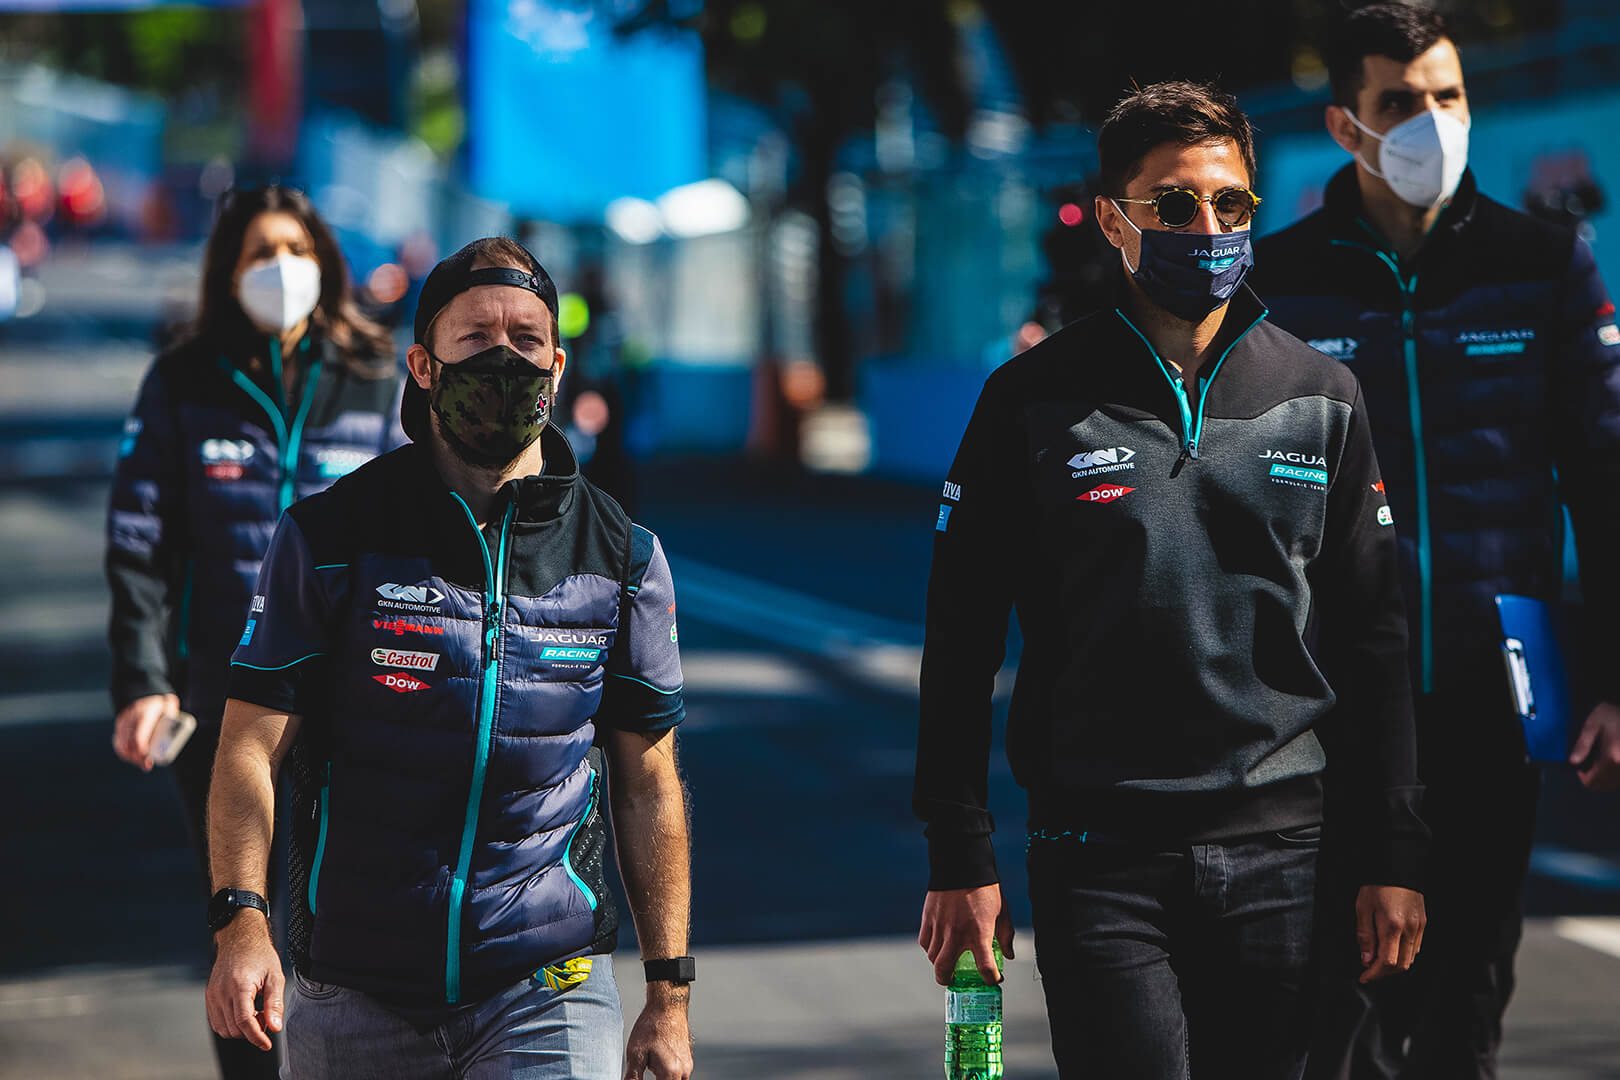 Sam-Bird-Mitch-Evans-Track-Walk-Rome